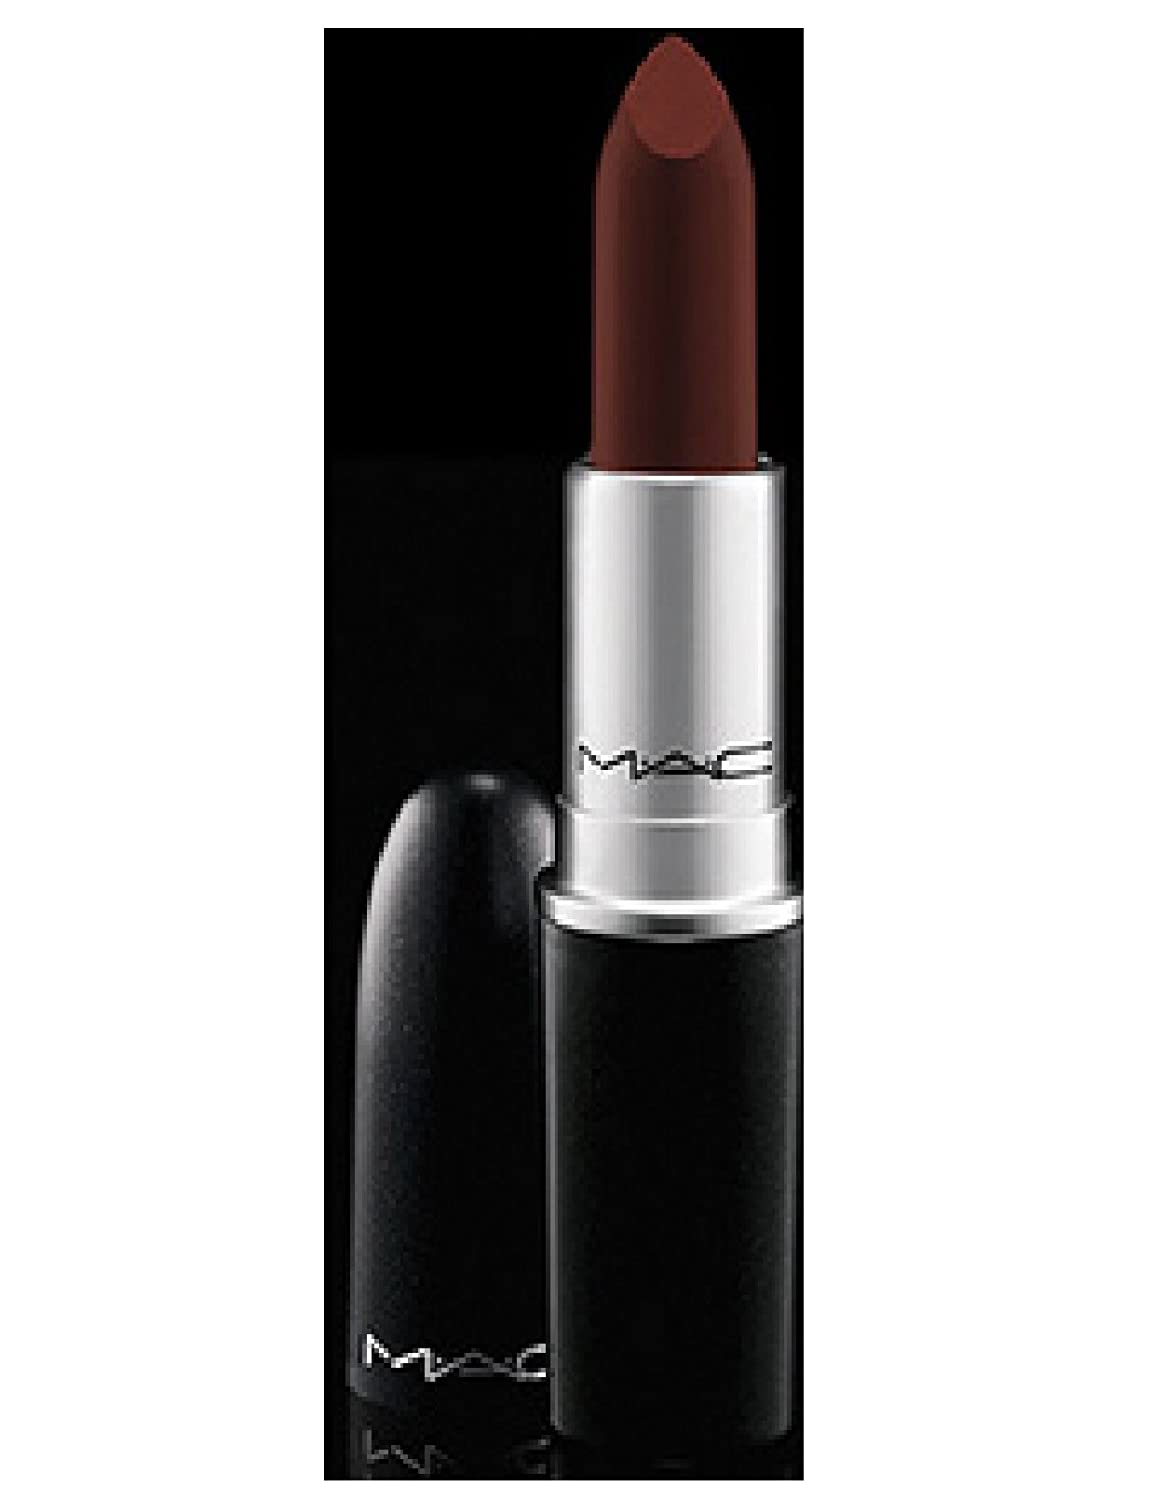 Favoloso Amazon.com : Mac Matte Lipstick, Antique Velvet : Beauty EU07